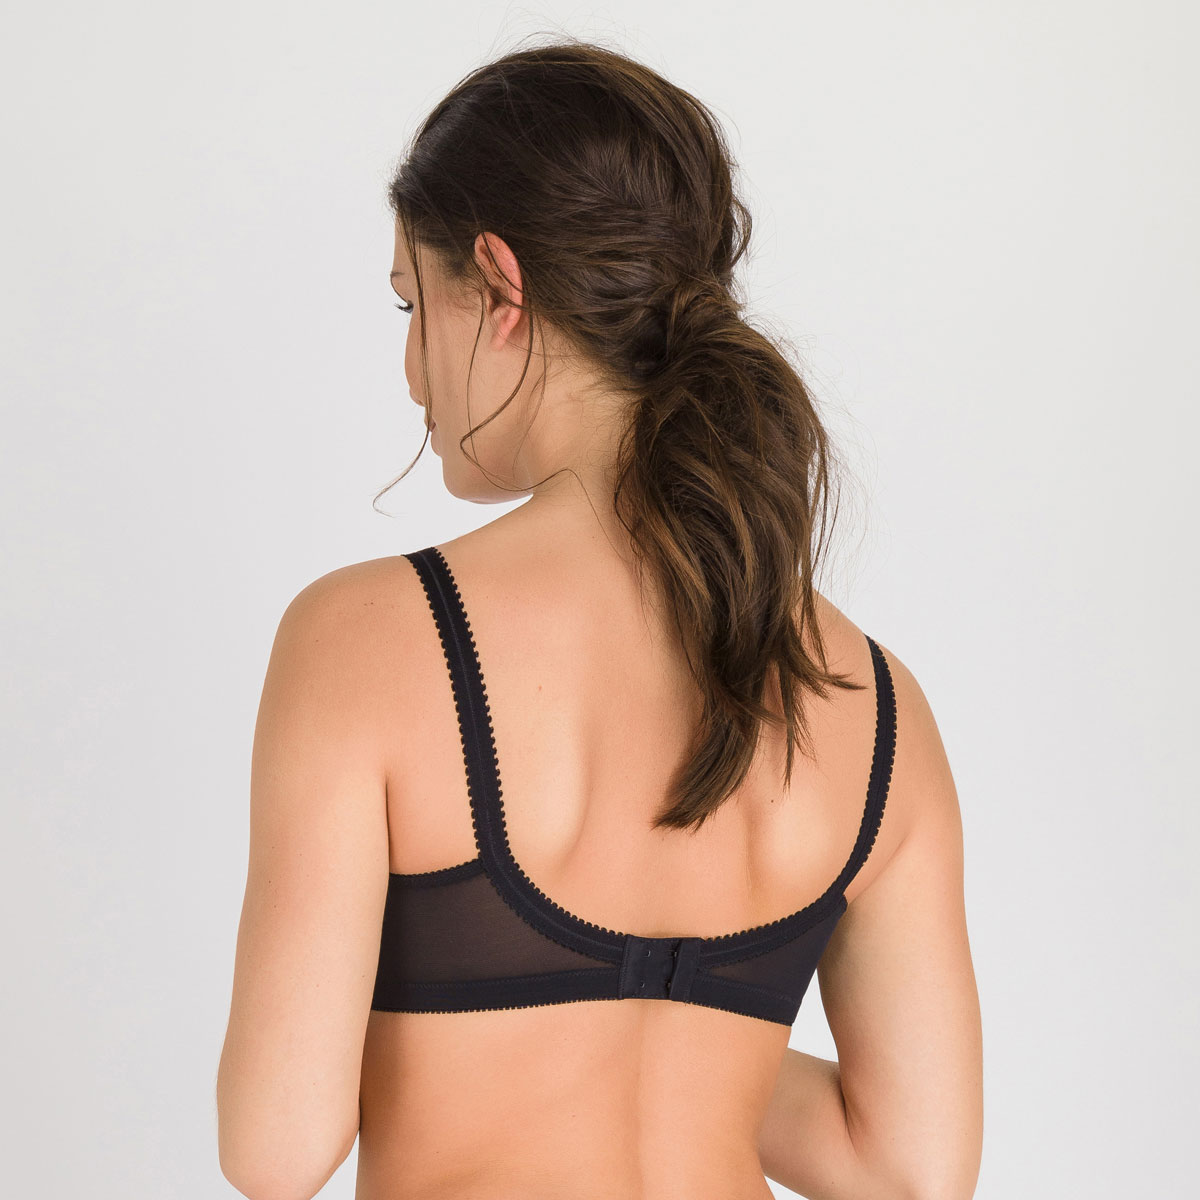 Non-wired Bra in Black – Cross Your Heart 556-PLAYTEX